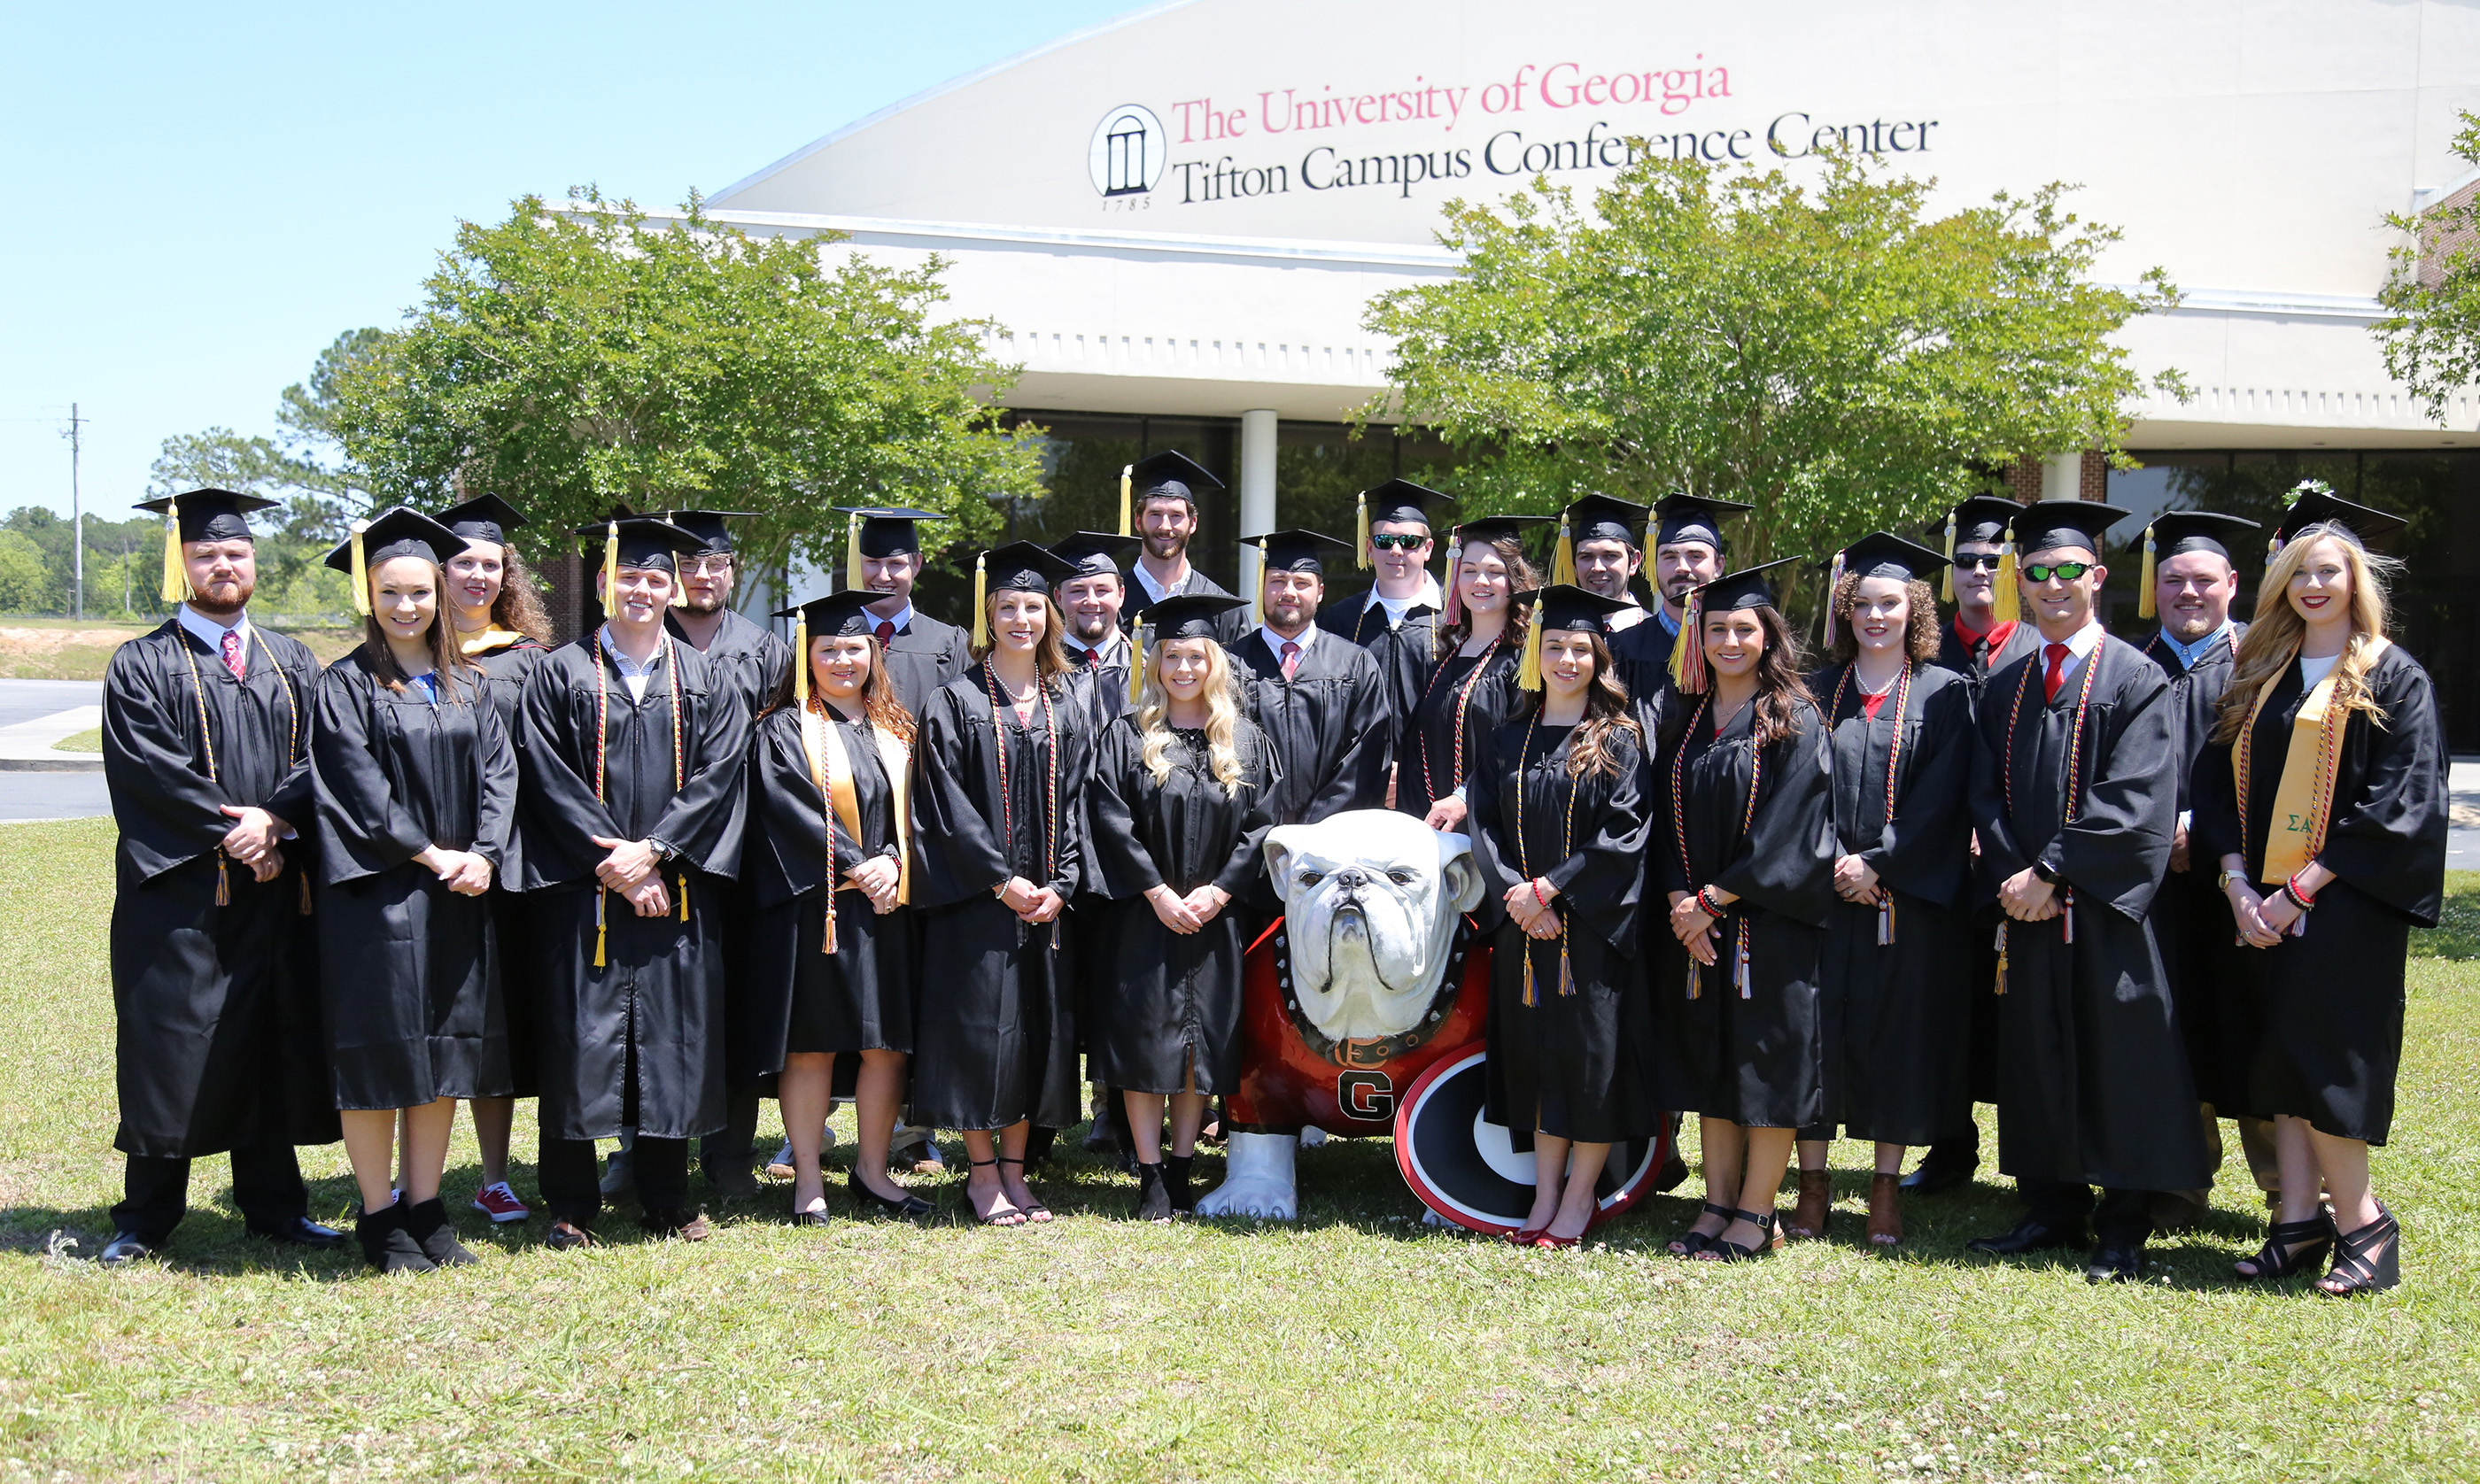 Members of the UGA-Tifton 2018 spring and summer graduation classes pose for a picture outside the UGA Tifton Campus Conference Center on April 29, 2018.